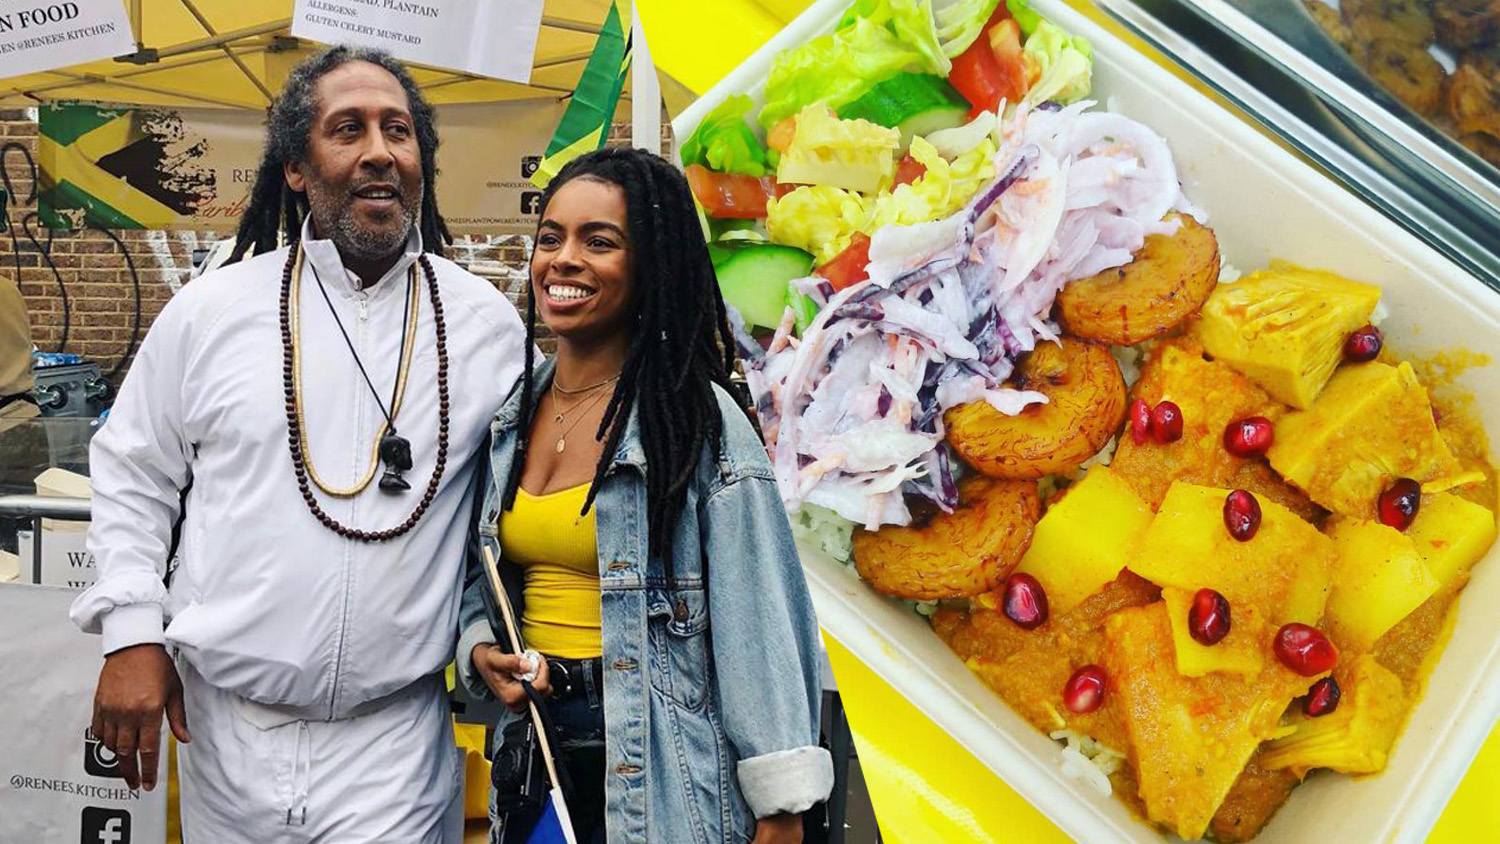 YouTuber Rachel Ama and BBC Explore Vegan Food Among Caribbean Chefs